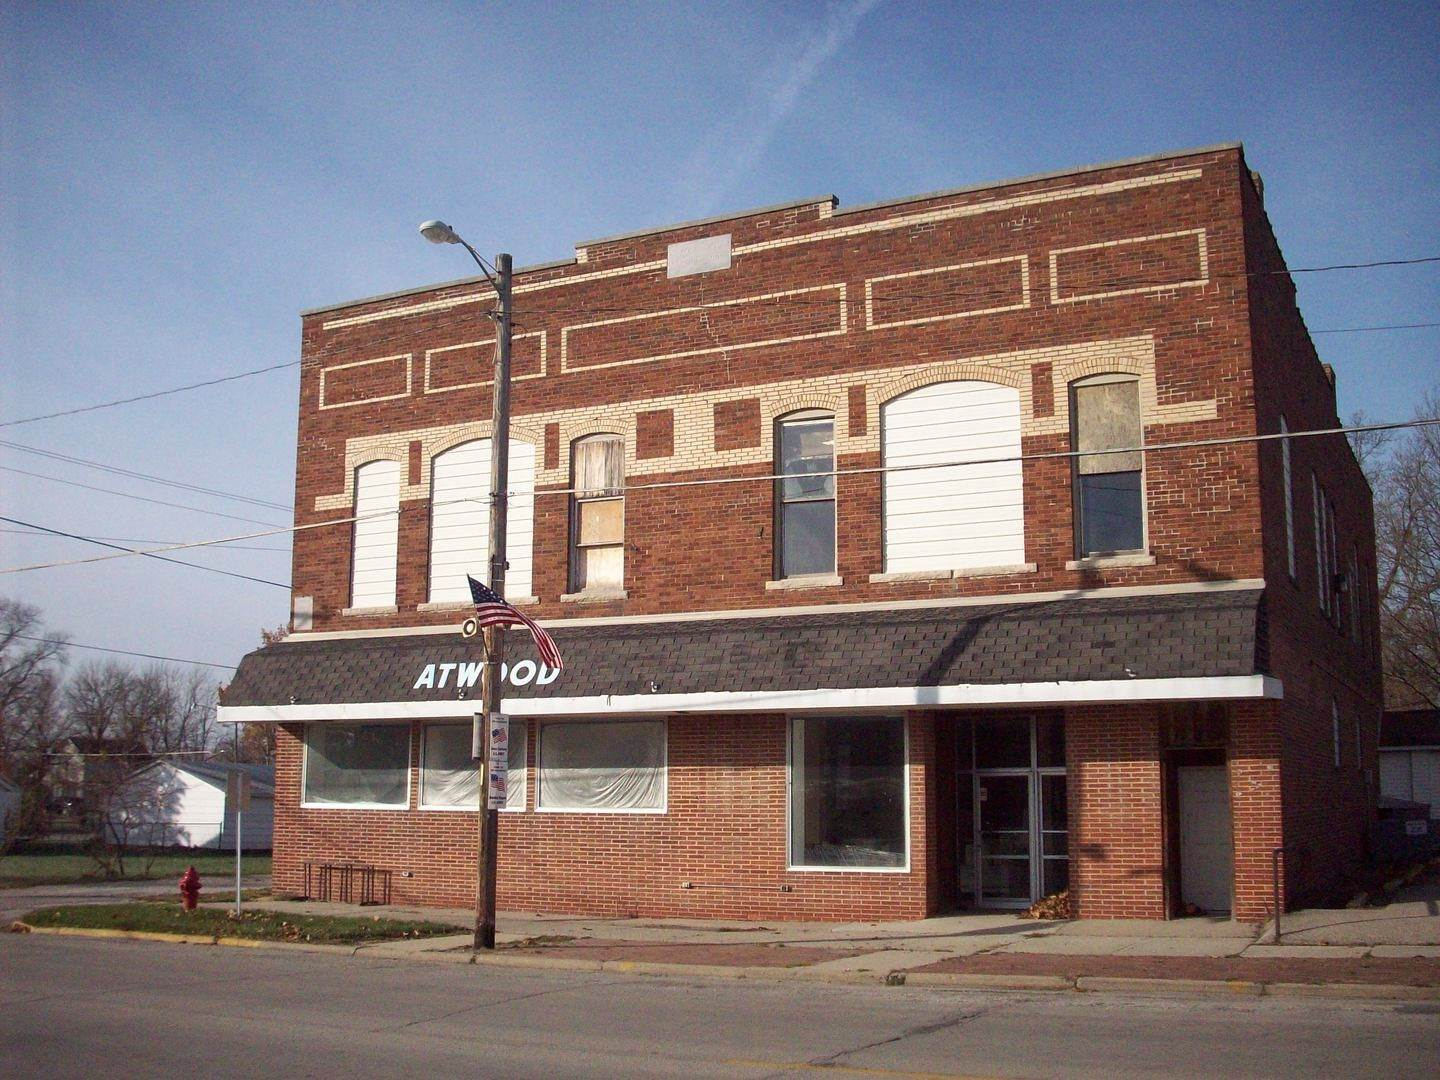 Commercial for Sale at 209 S Main Street Atwood, Illinois 61913 United States